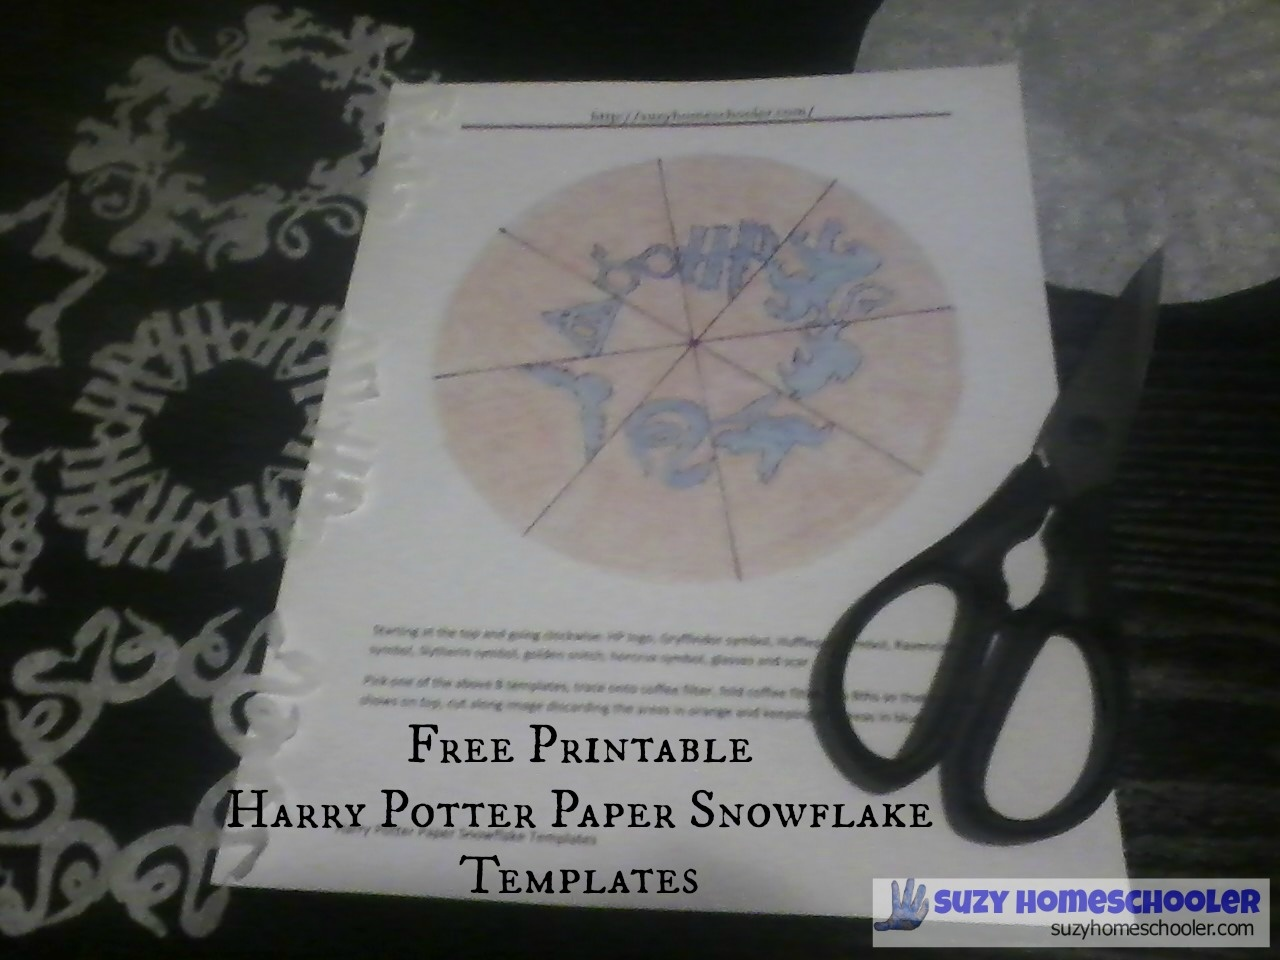 Free Printable Harry Potter Paper Snowflake Templates | Suzy - Snowflake Template Free Printable